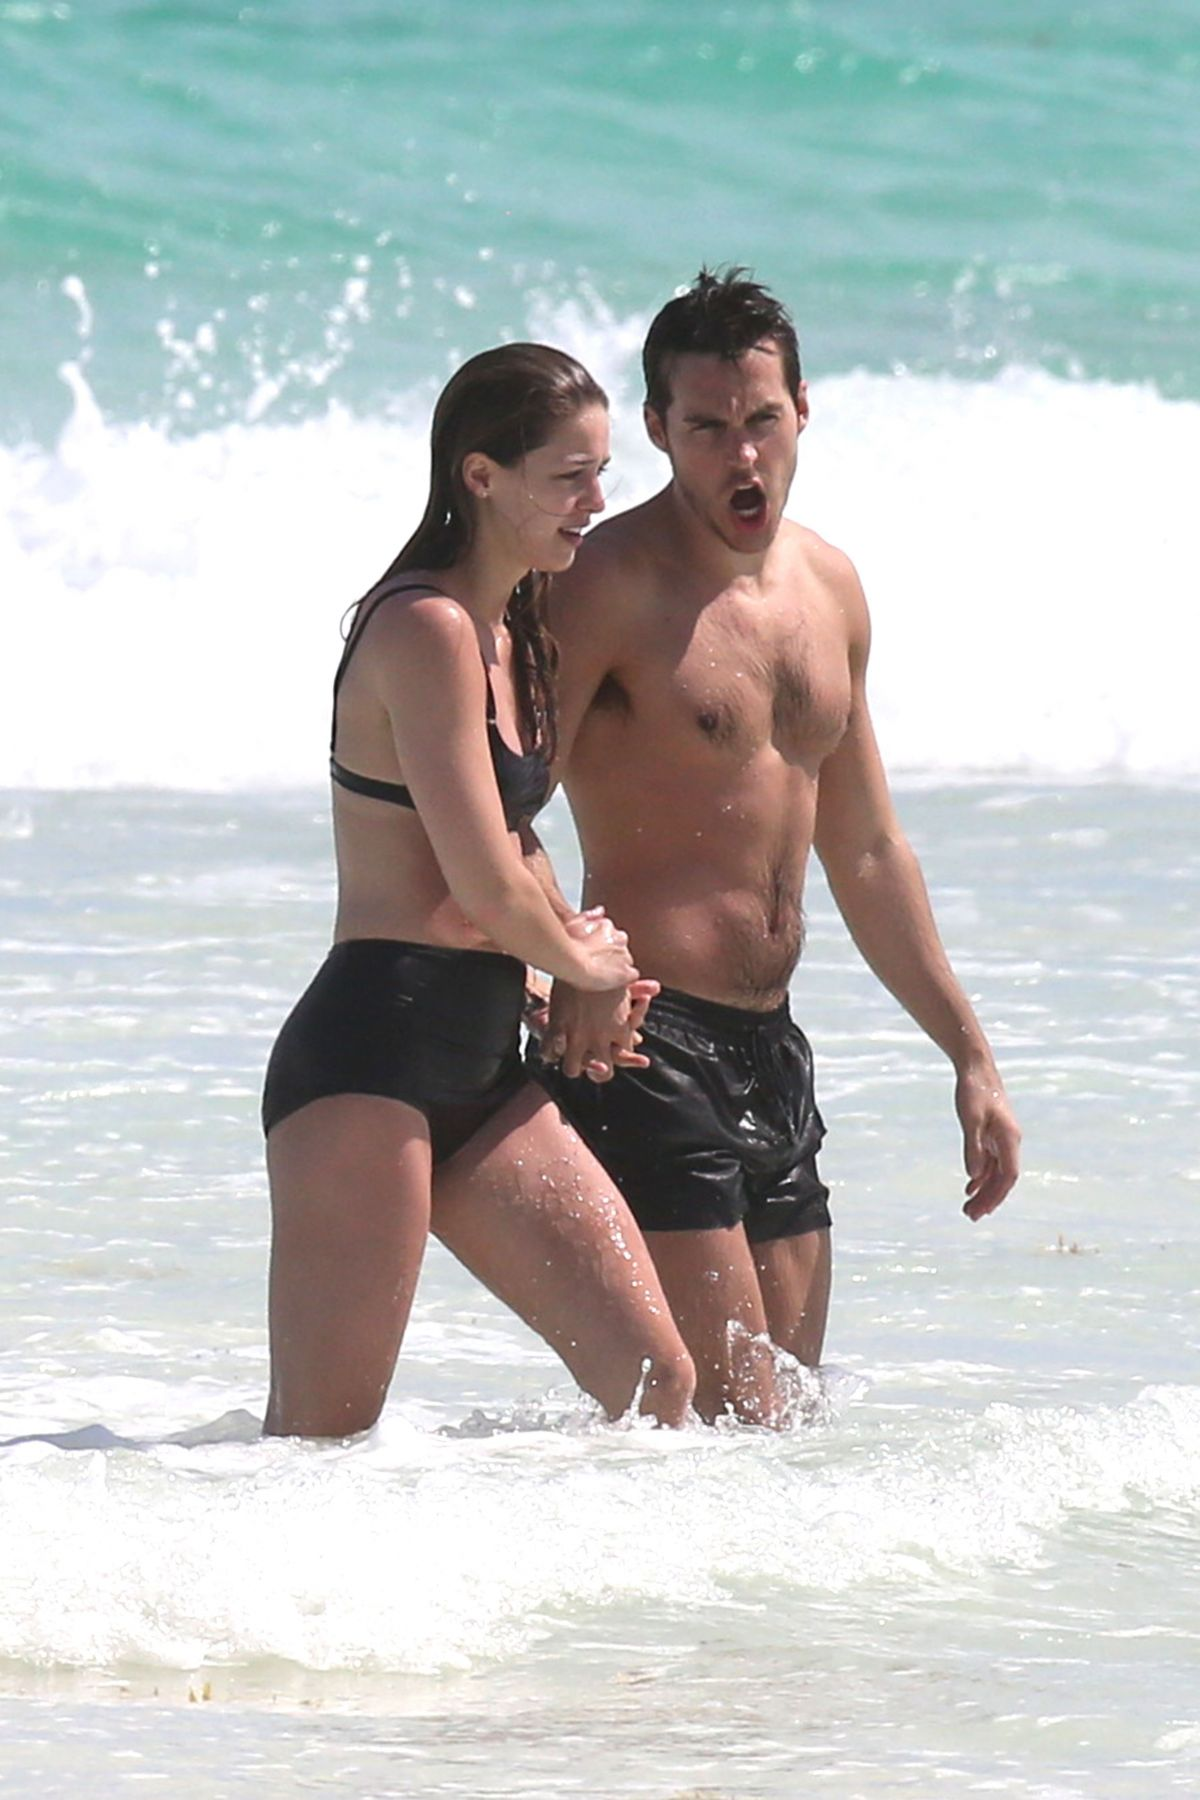 http://www.hawtcelebs.com/wp-content/uploads/2017/03/melissa-benoist-and-chris-wood-at-a-beach-in-cancun-03-29-2017_10.jpg